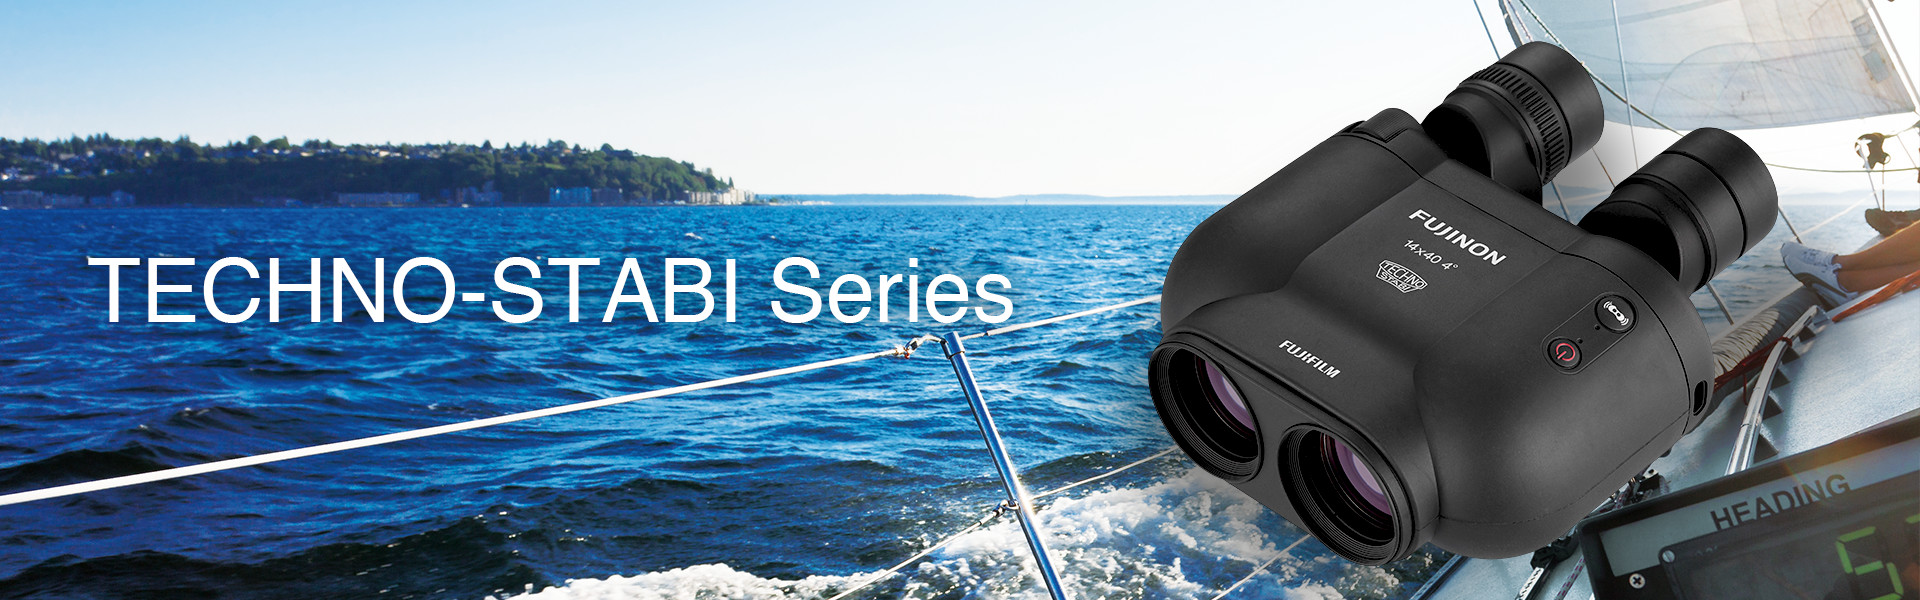 [photo] TS-X 1440 binoculars in front of background of ocean view from a sailboat